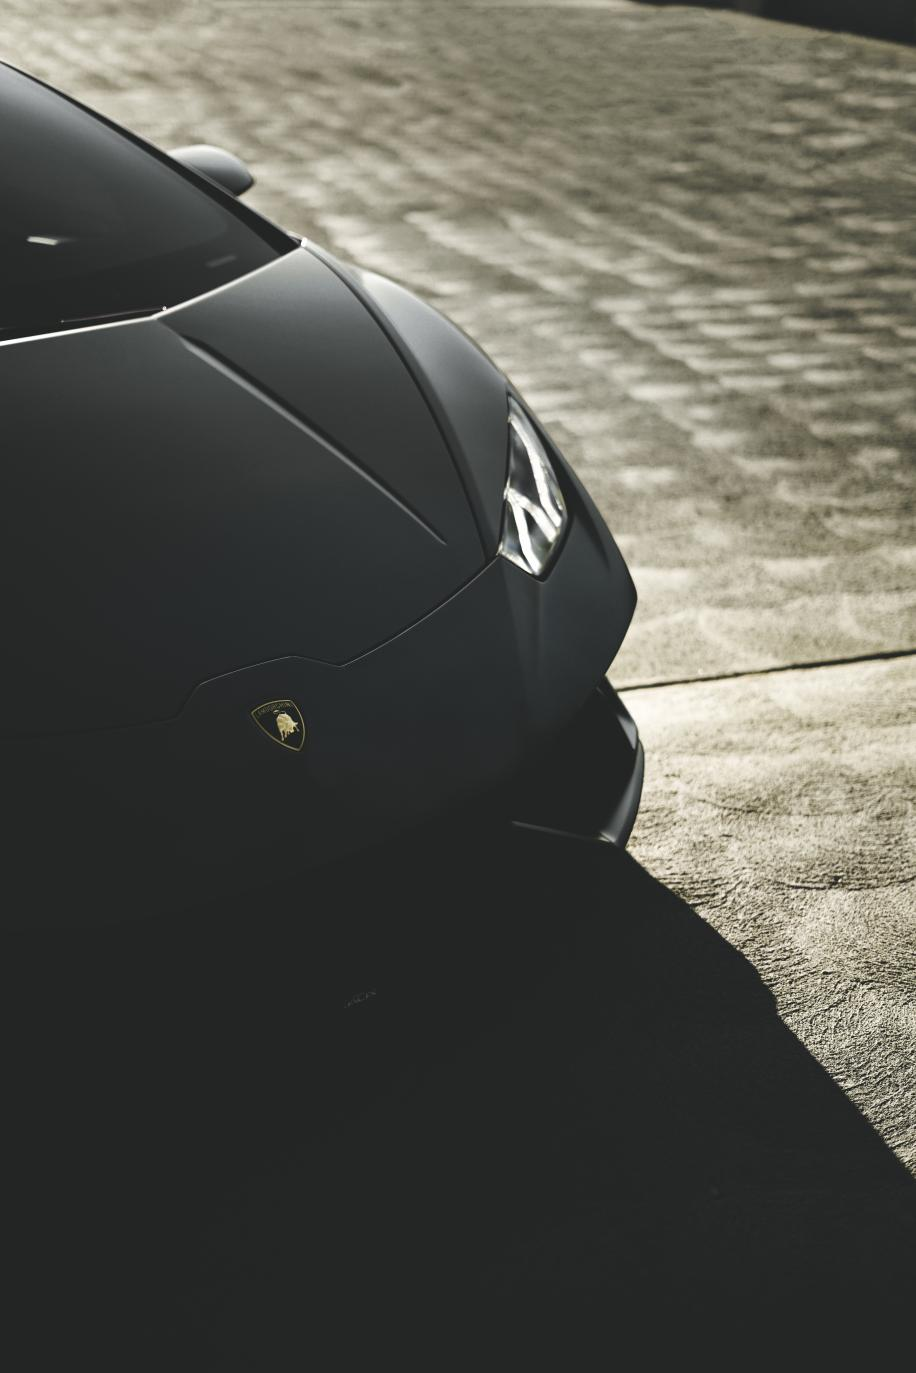 Intro for the Performante-dsc07623-jpg